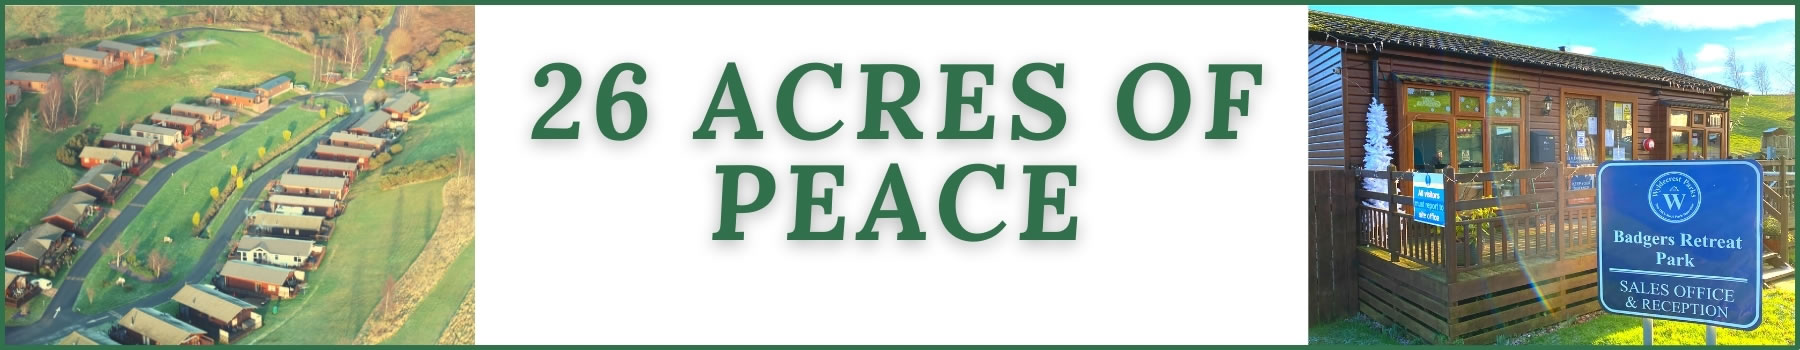 Badgers Banner - 26 Acres of Peace